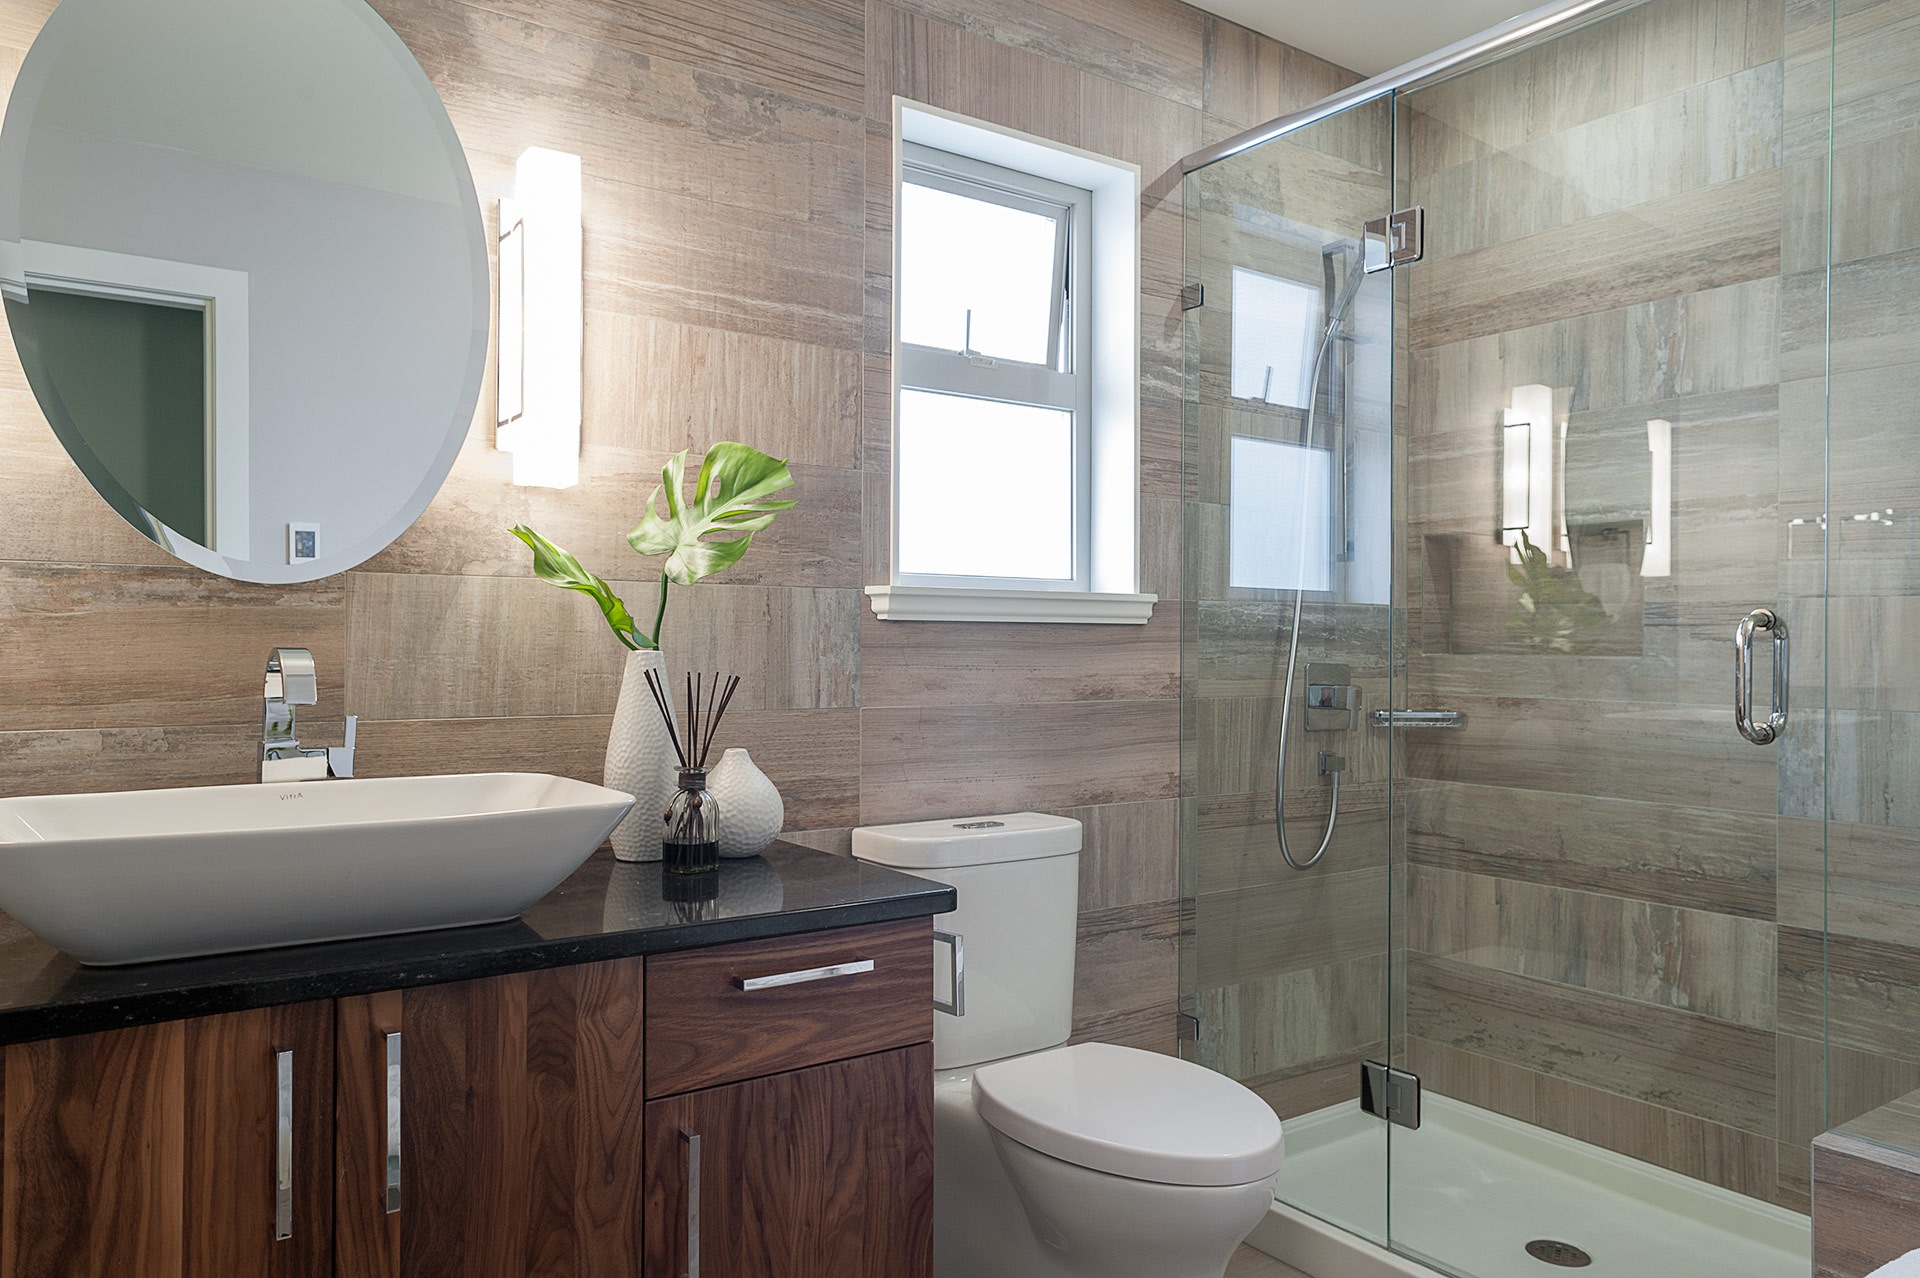 Deelat blog tips for bathroom renovation ideas - Small full bathroom remodel ideas ...